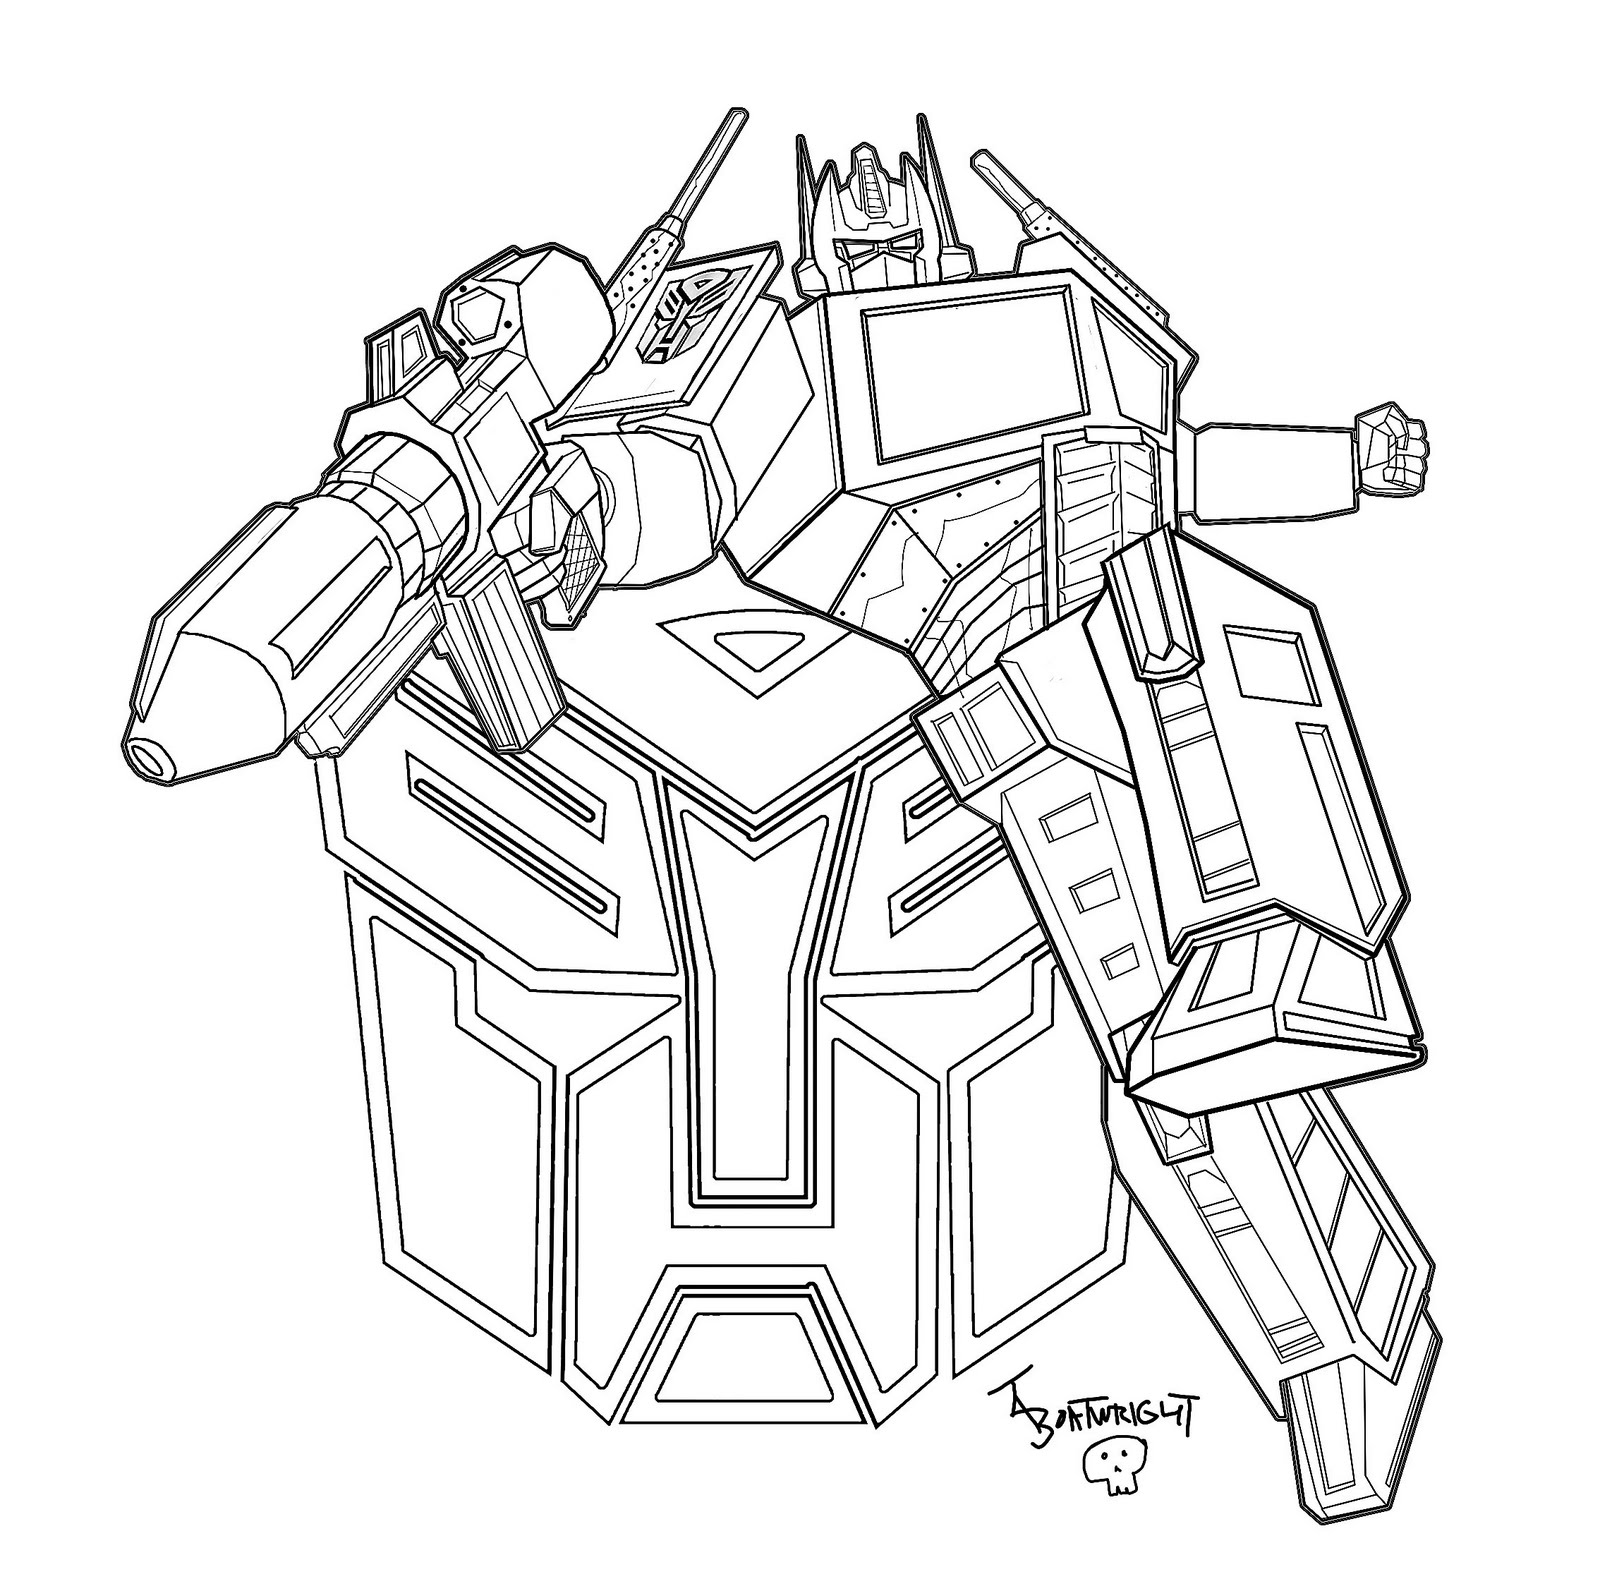 Optimus Prime Transformers Coloring Pages Gt Gt Disney Optimus Prime Coloring Page